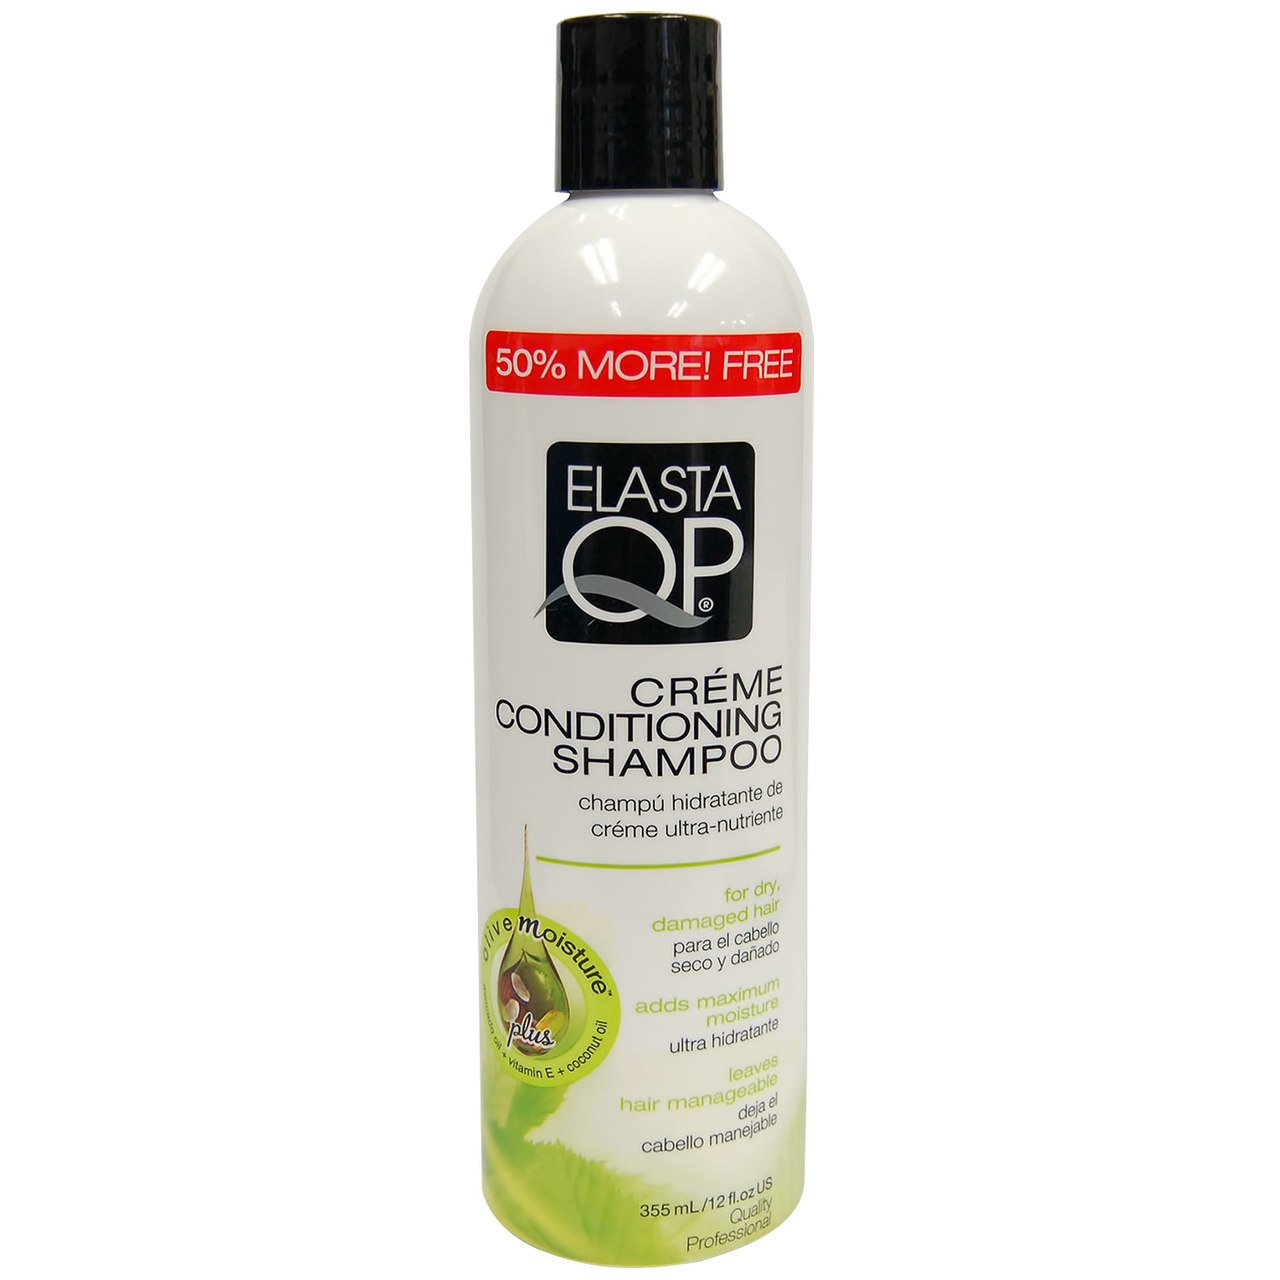 Elasta Qp Creme Conditioning Shampoo for Dry Damaged Hair, 12 Ounce